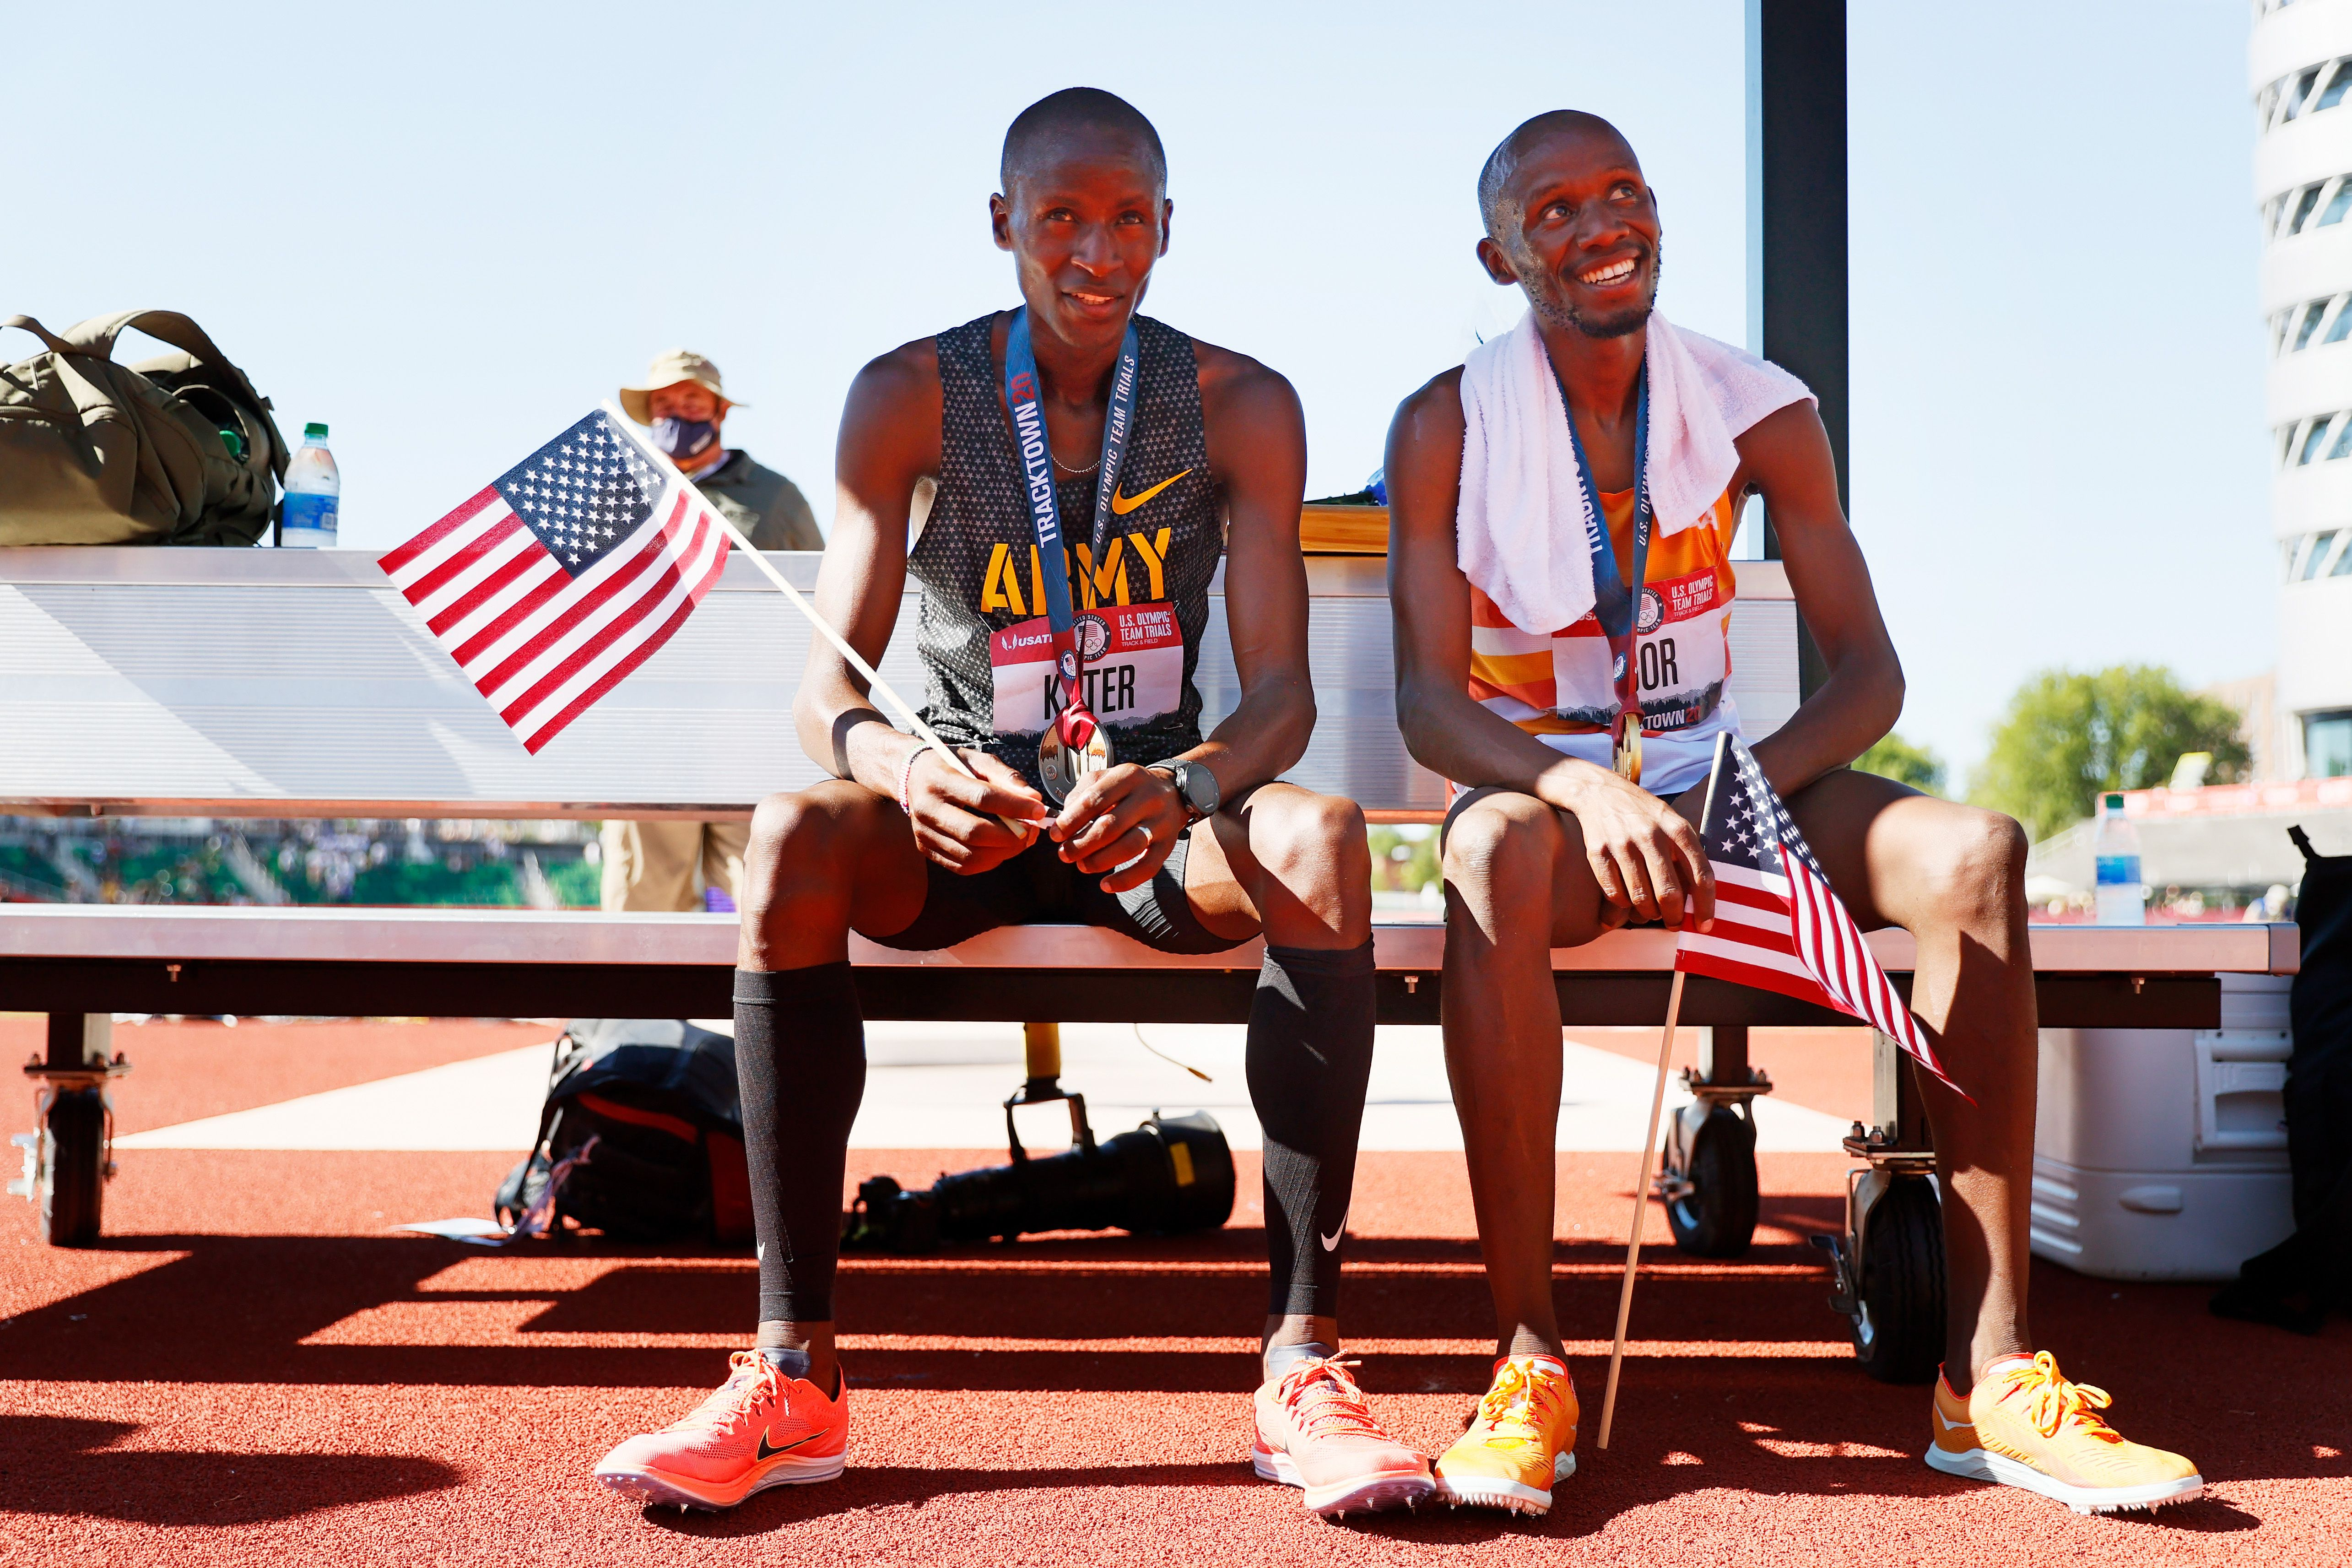 Hillary Bor and Benard Keter in June at the U.S. Olympic trials in Oregon. Photo: Steph Chambers/Getty Images